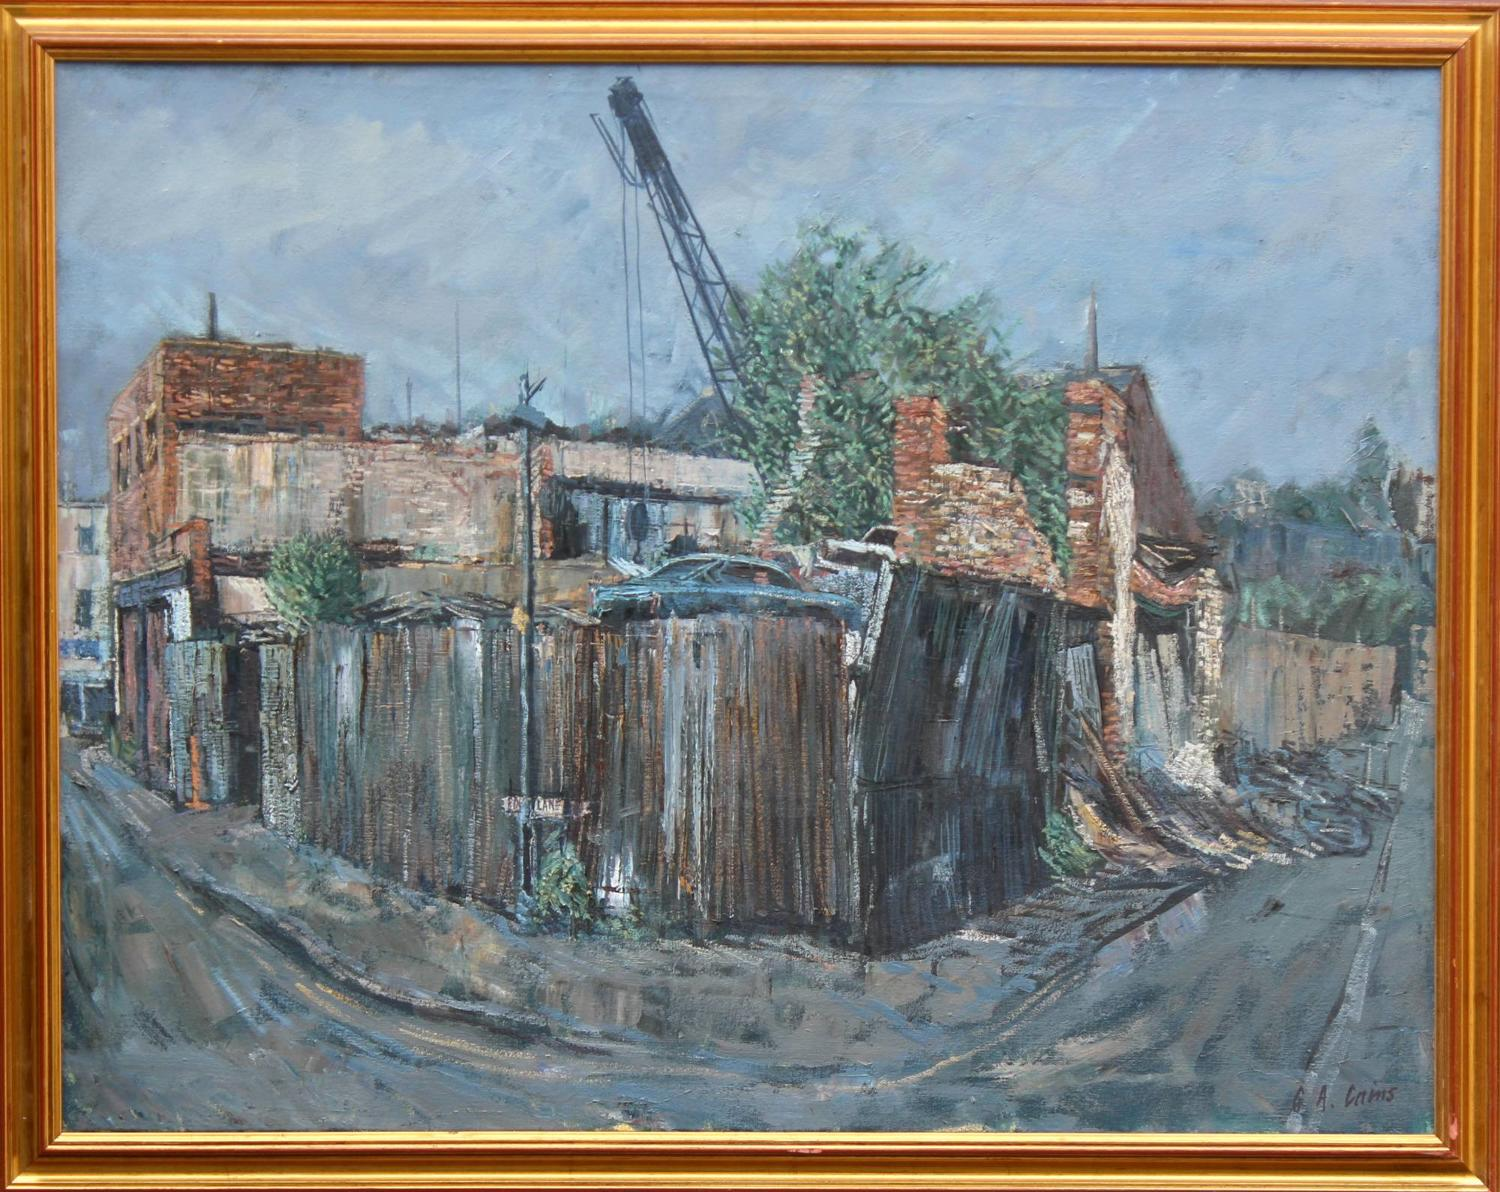 Gerald Albert Cains Oil on Canvas of a Scrapyard